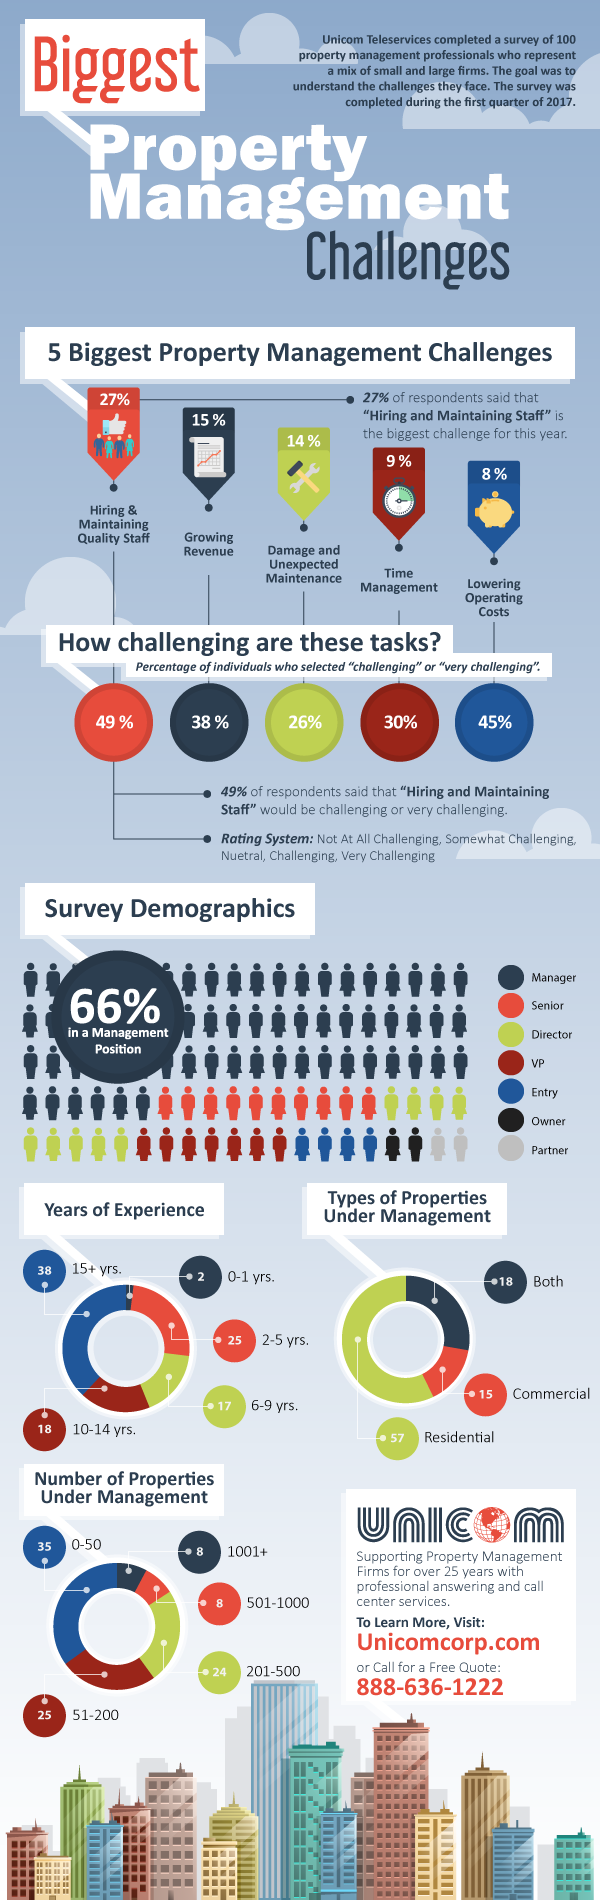 Property Management Survey Infographic